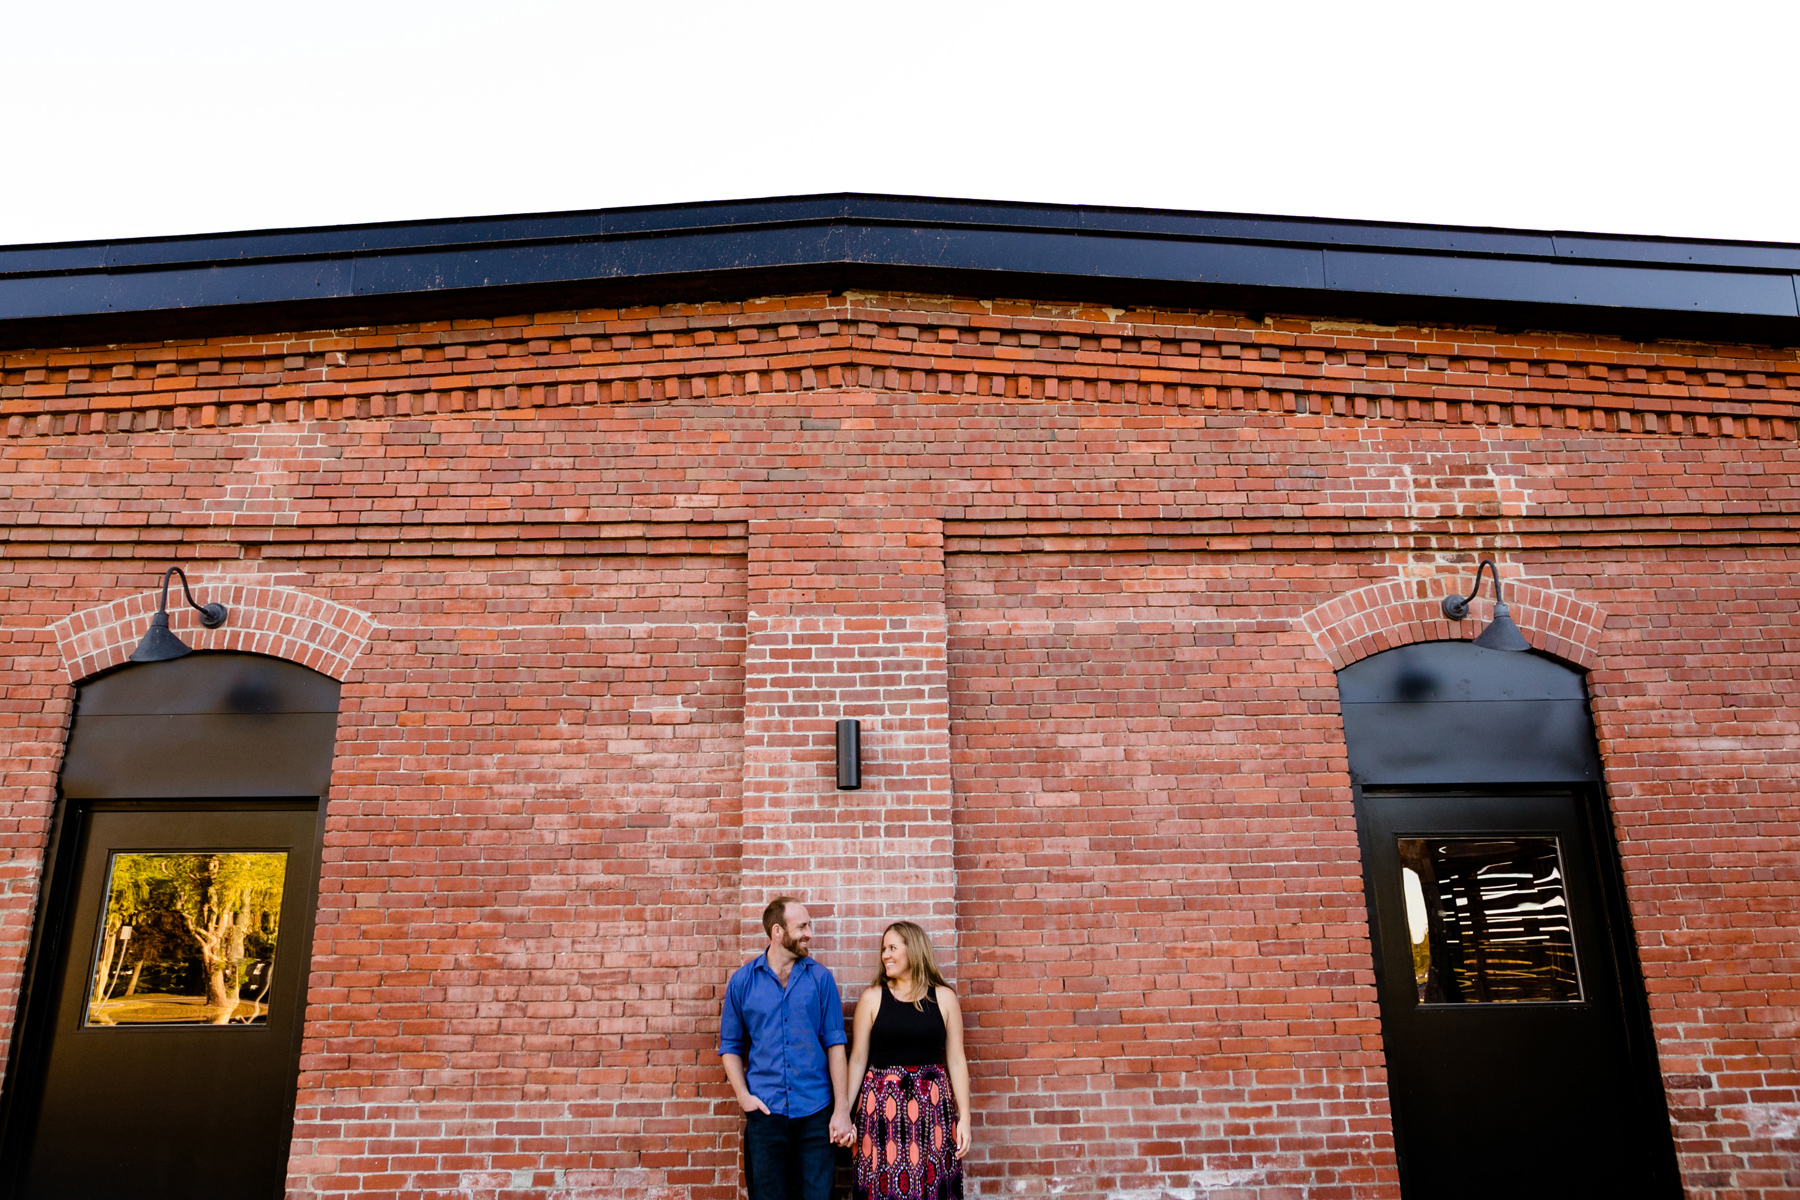 004-fredericton-engagement-photography-kandisebrown-hd2017